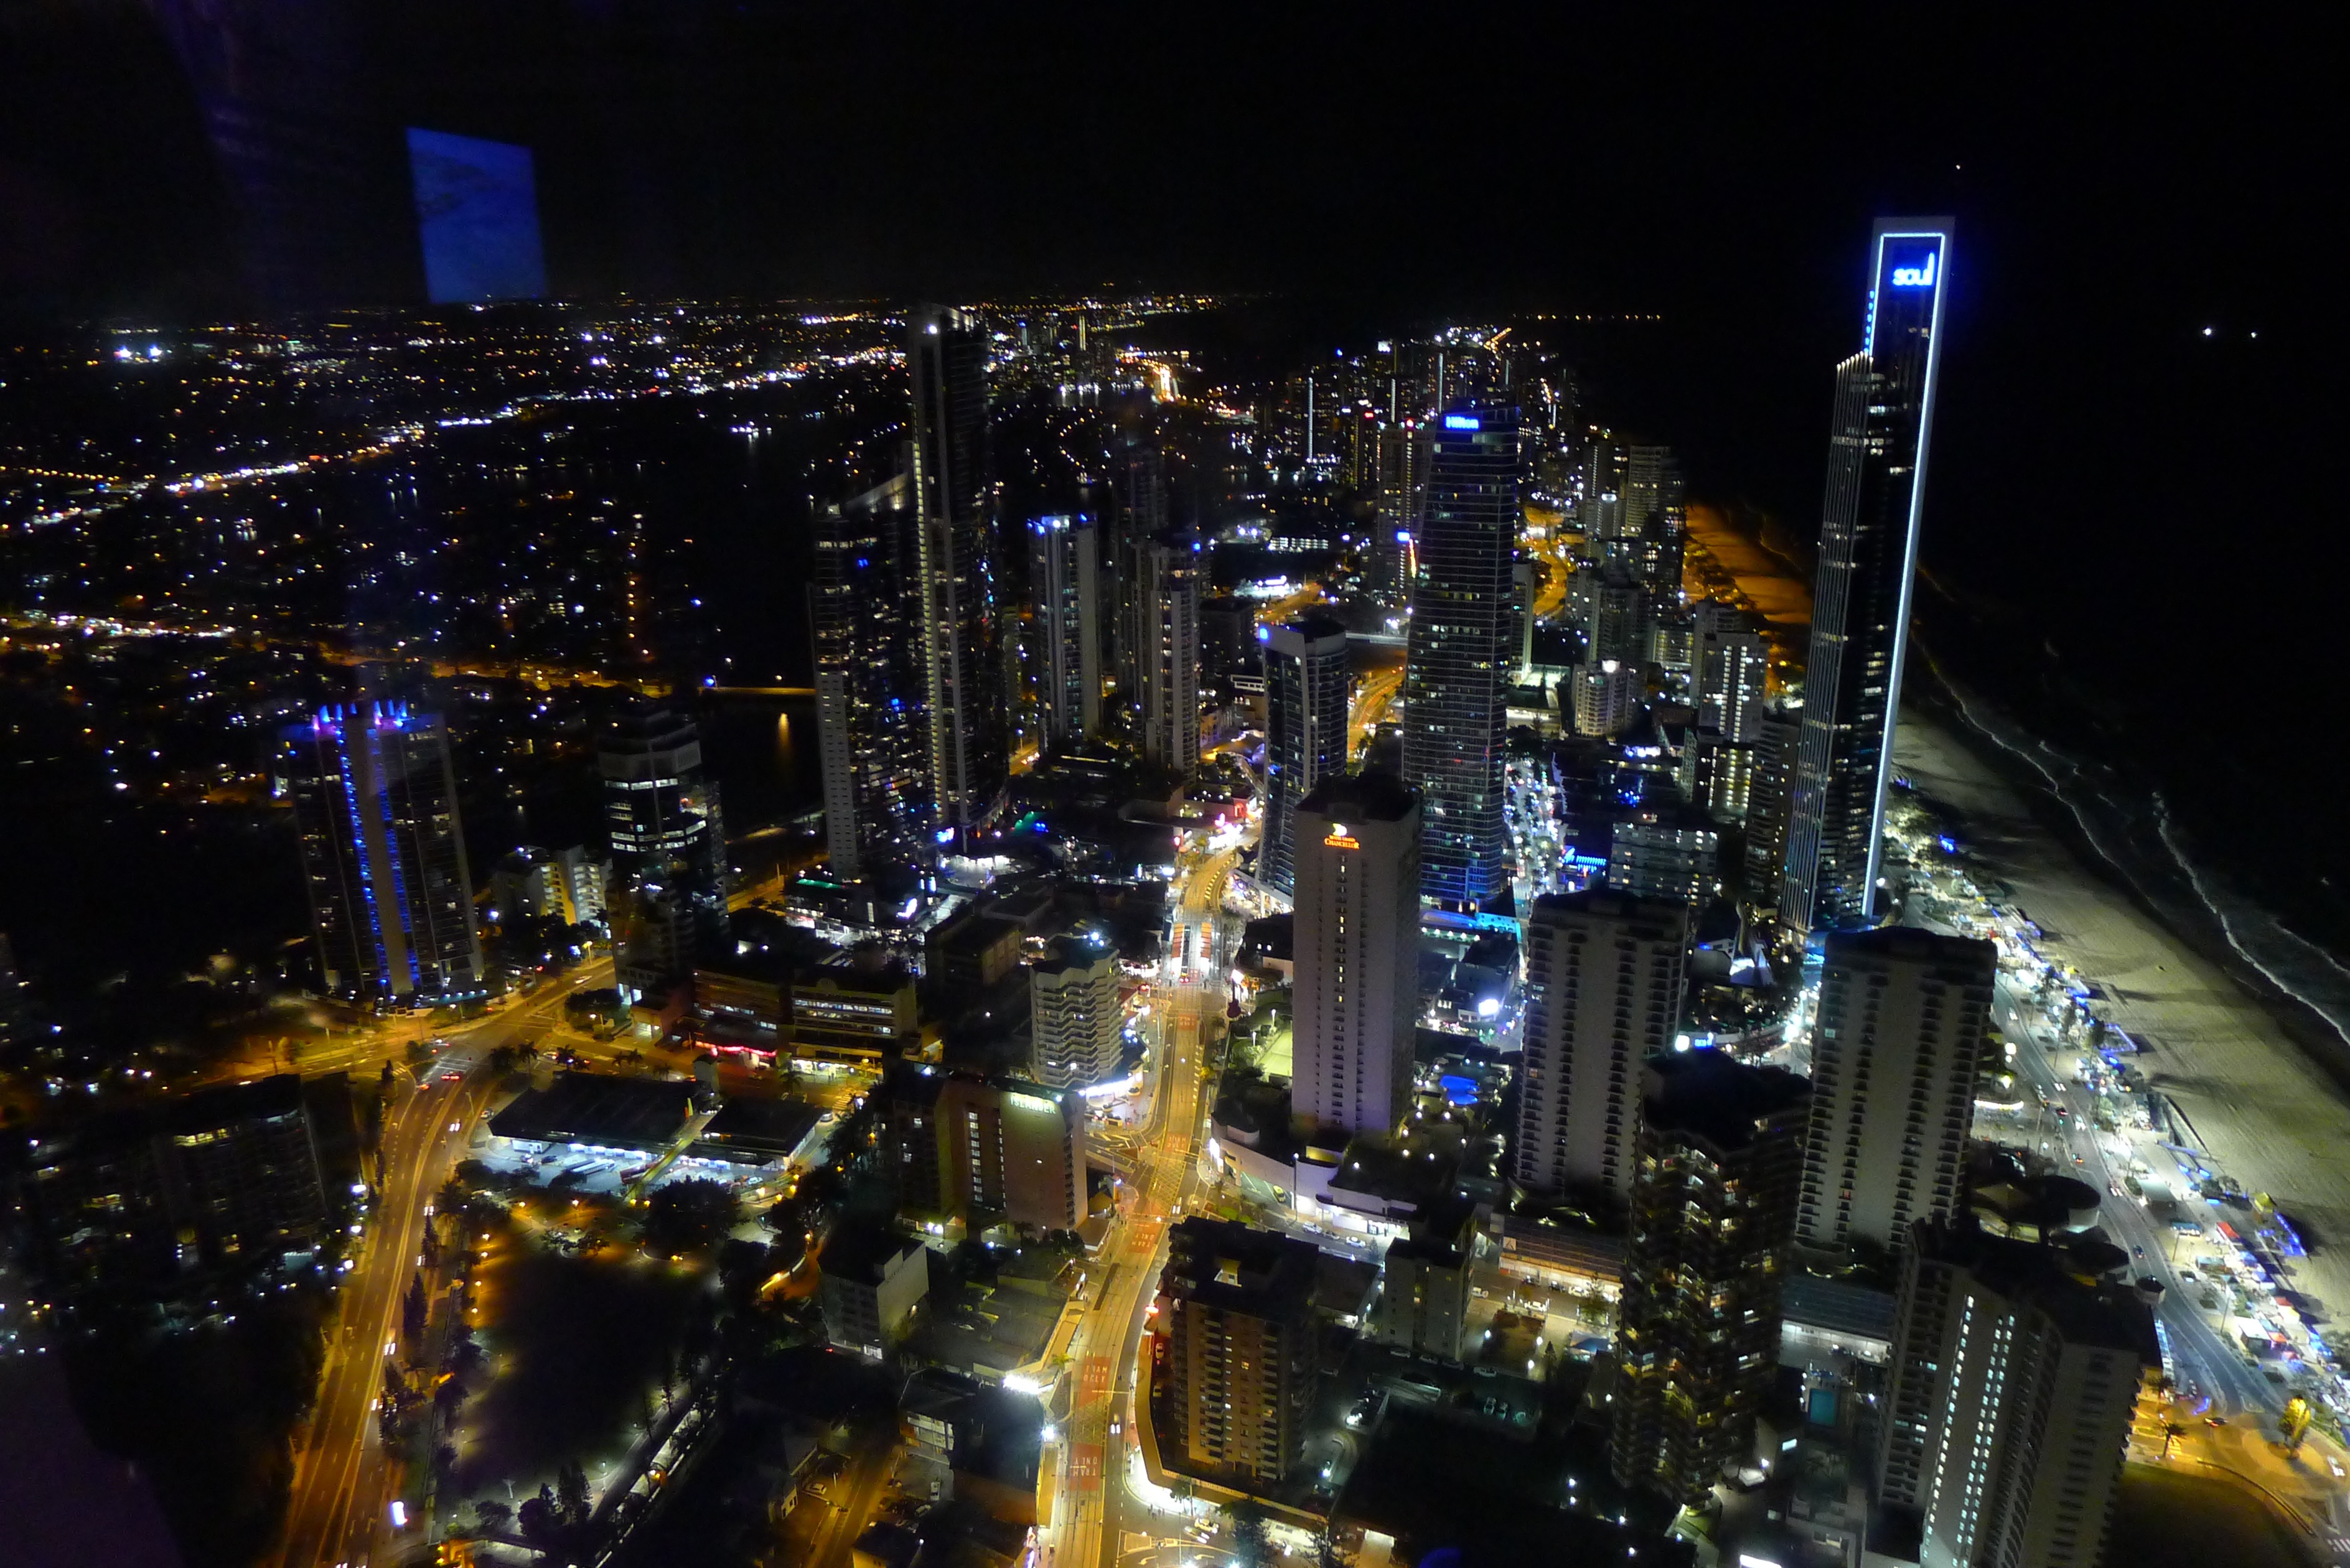 View of Gold Coast from Observation Deck